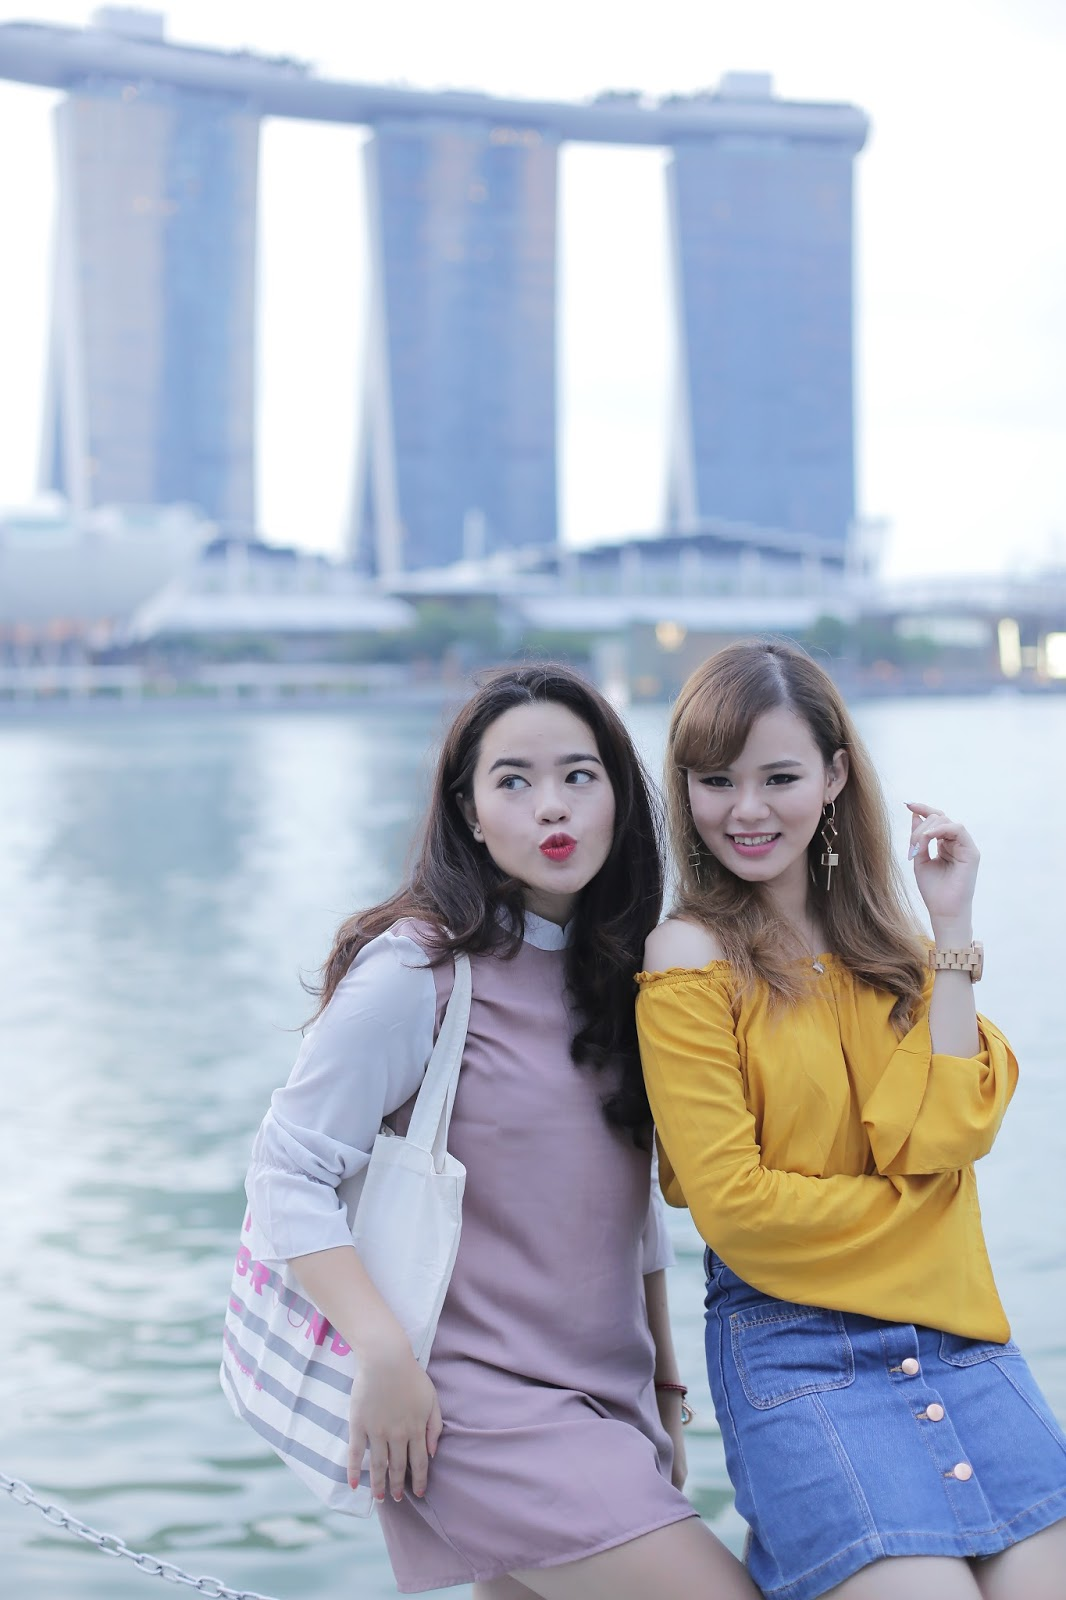 h&m, forever 21, casual outfit, fashion, ootd, jeanmilka ootd, fashion blogger, fashion blogger indonesia, singapore, marina bay sands, travel to singapore, indonesia fashion blogger